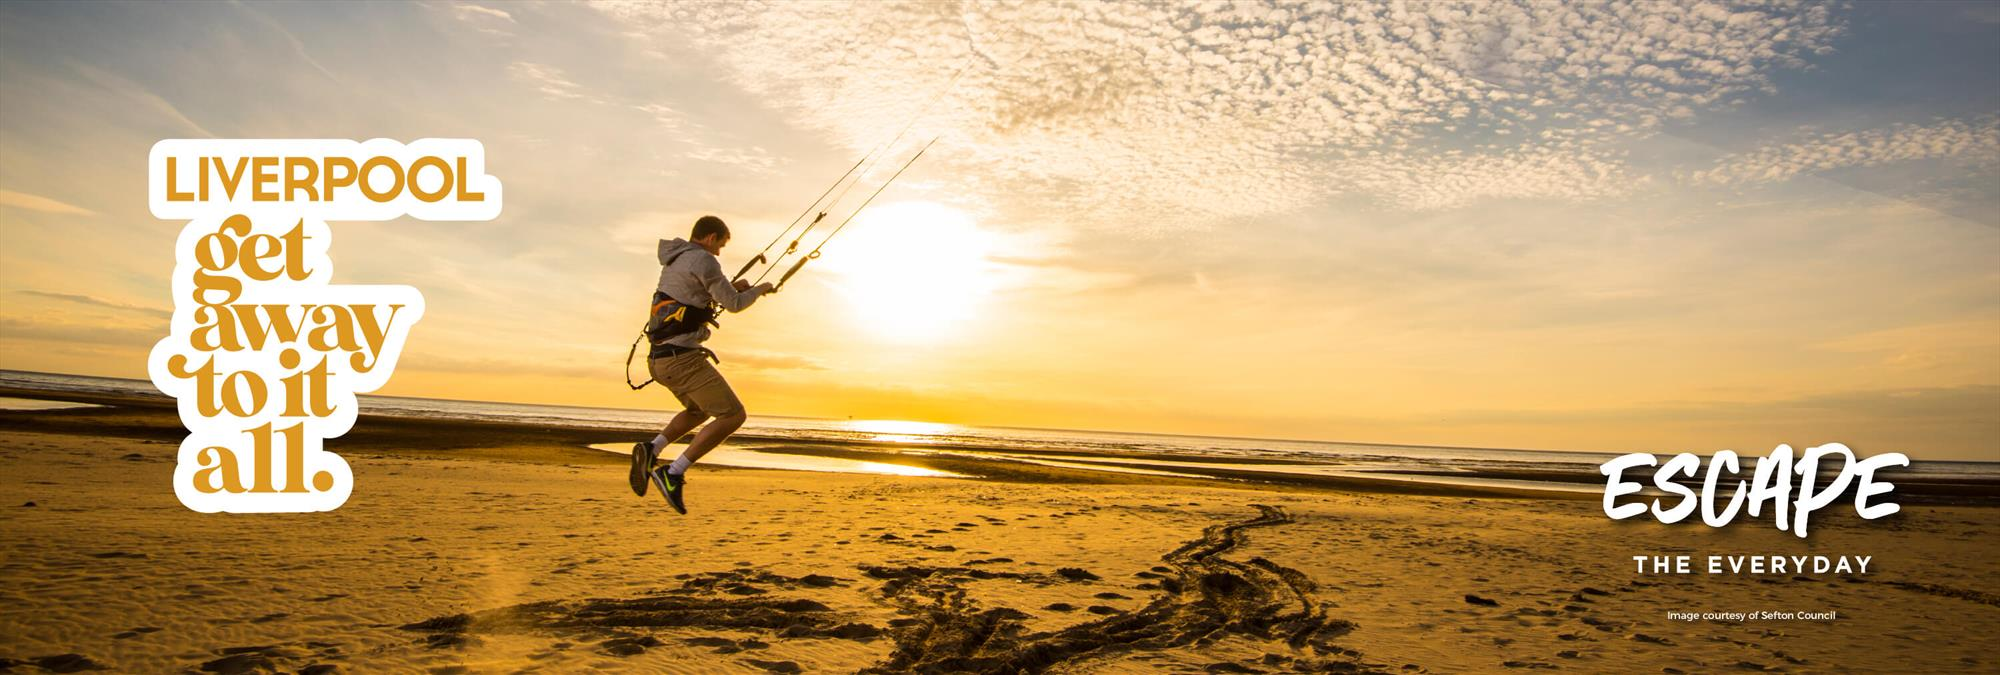 A man is about to paraglide on Crosby Beach at sunset.